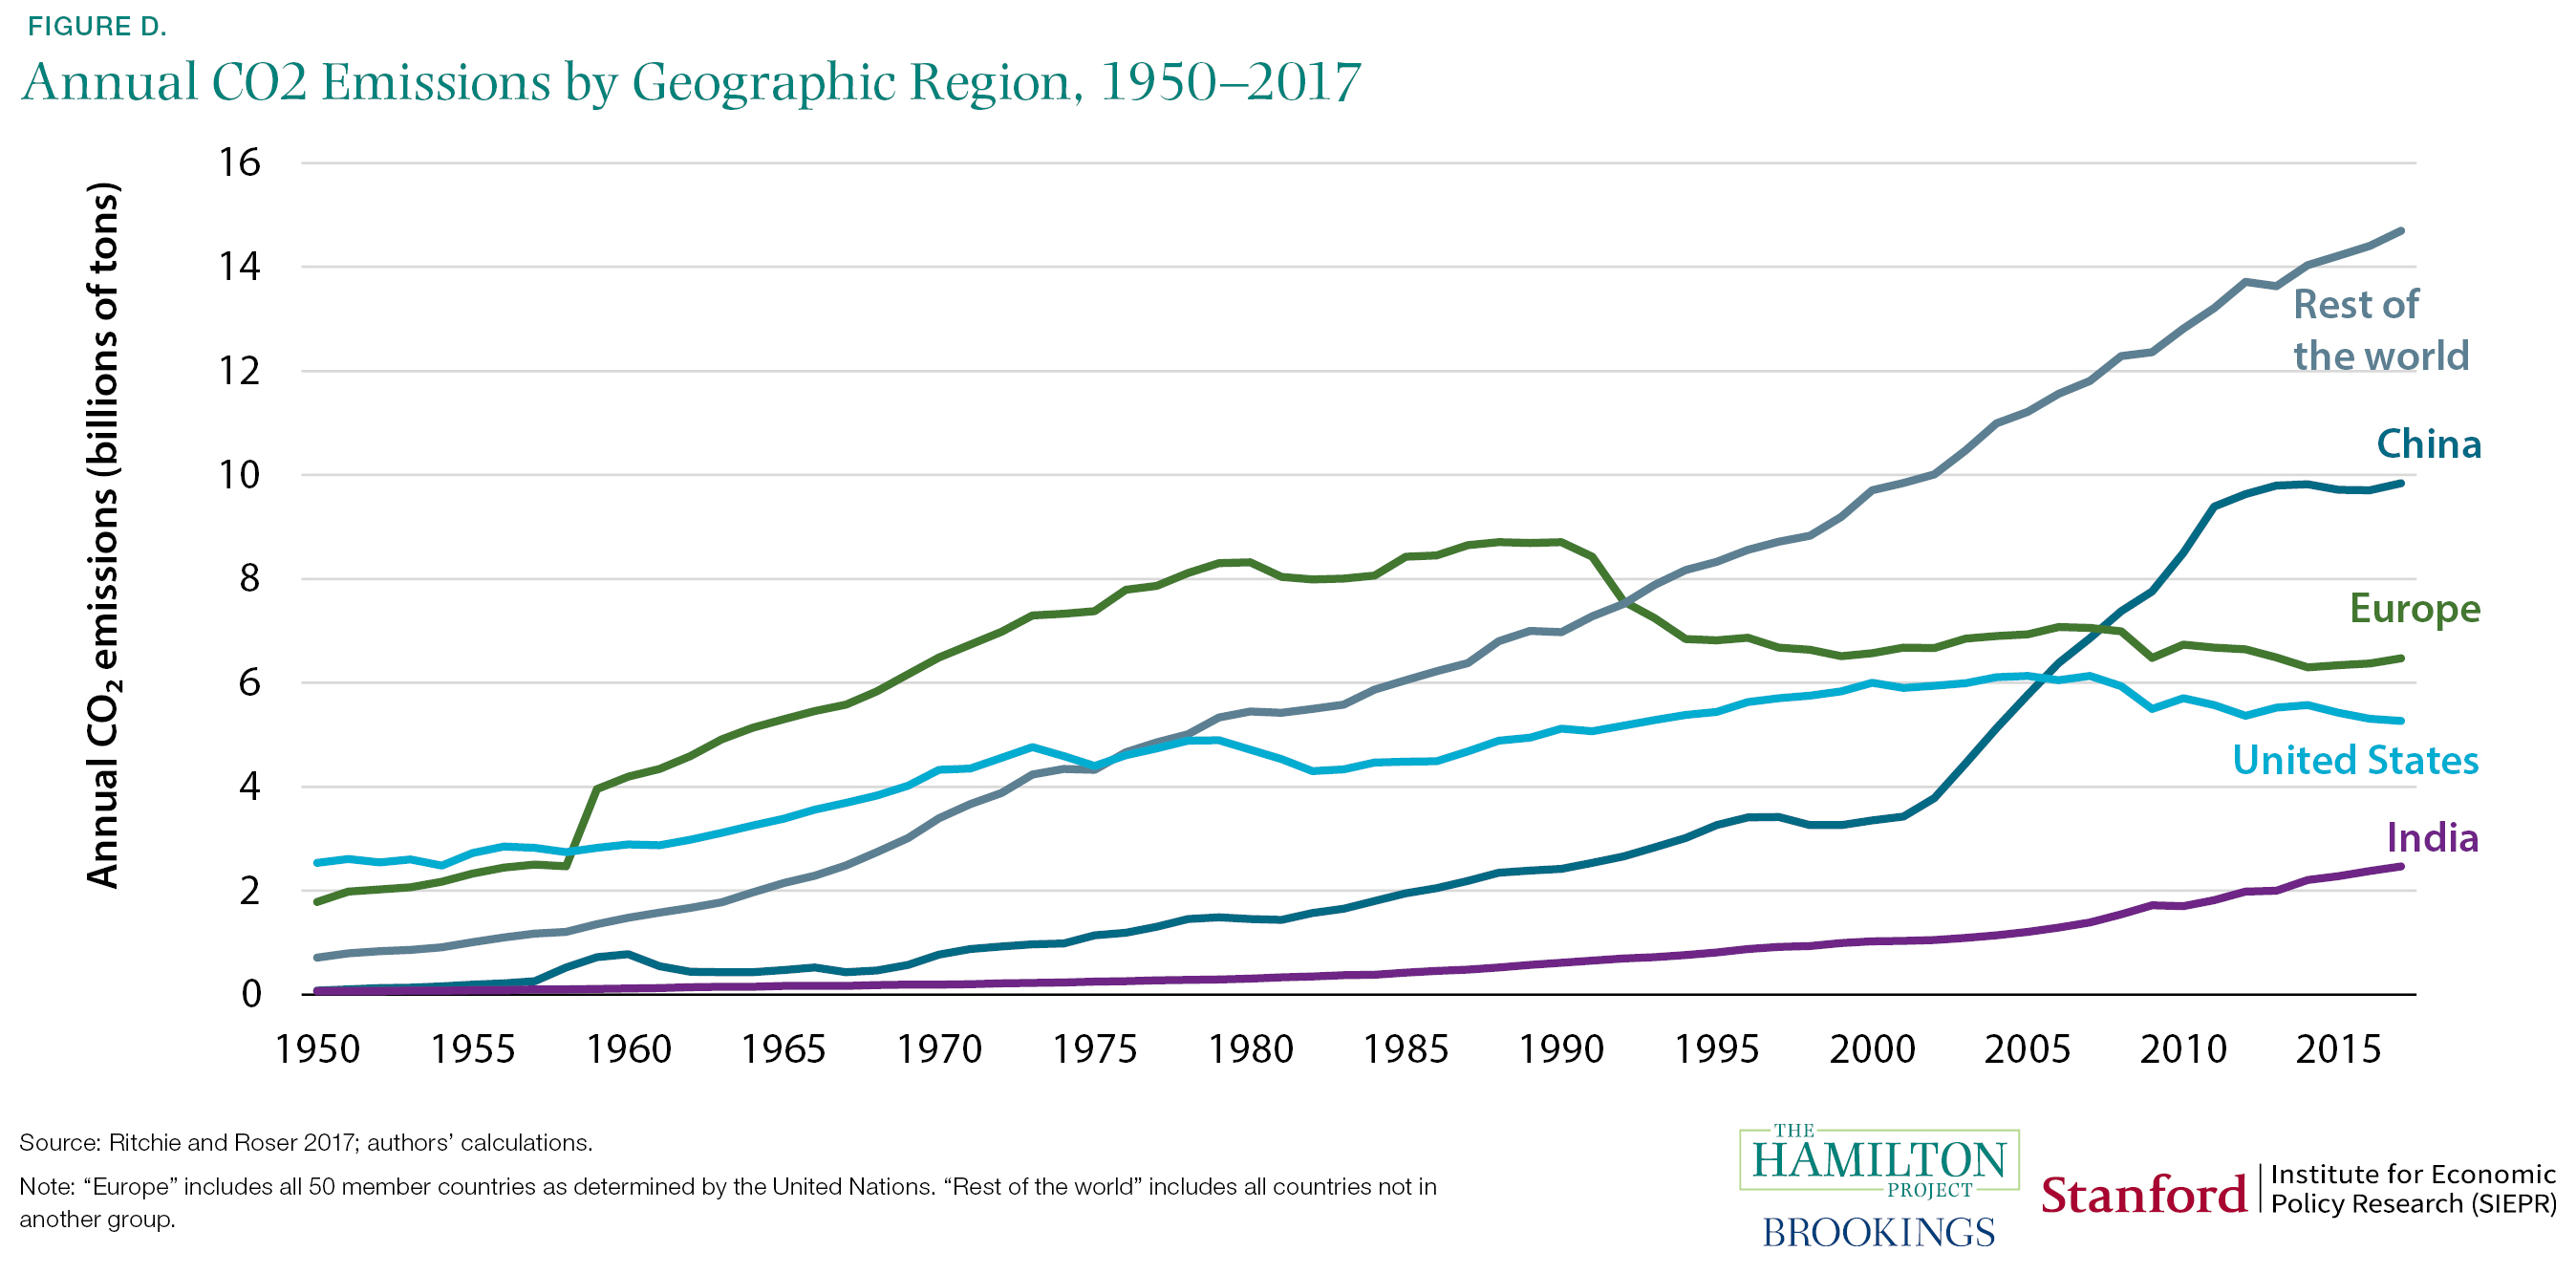 Annual CO2 Emissions by Geographic Region, 1950-2017